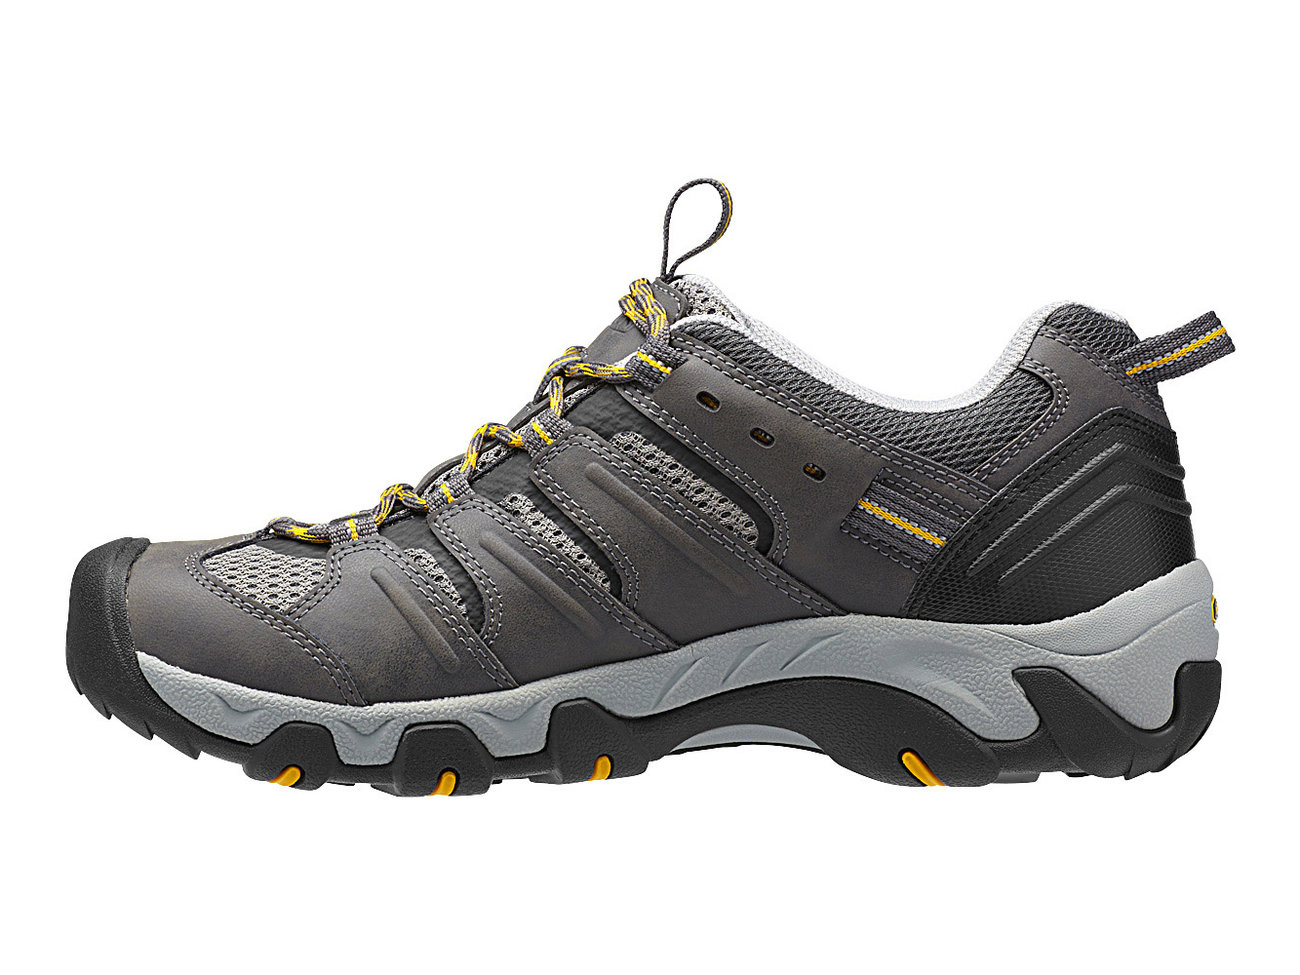 b8648d0d78e The Best Hiking Shoes and Boots for Men | Travel + Leisure